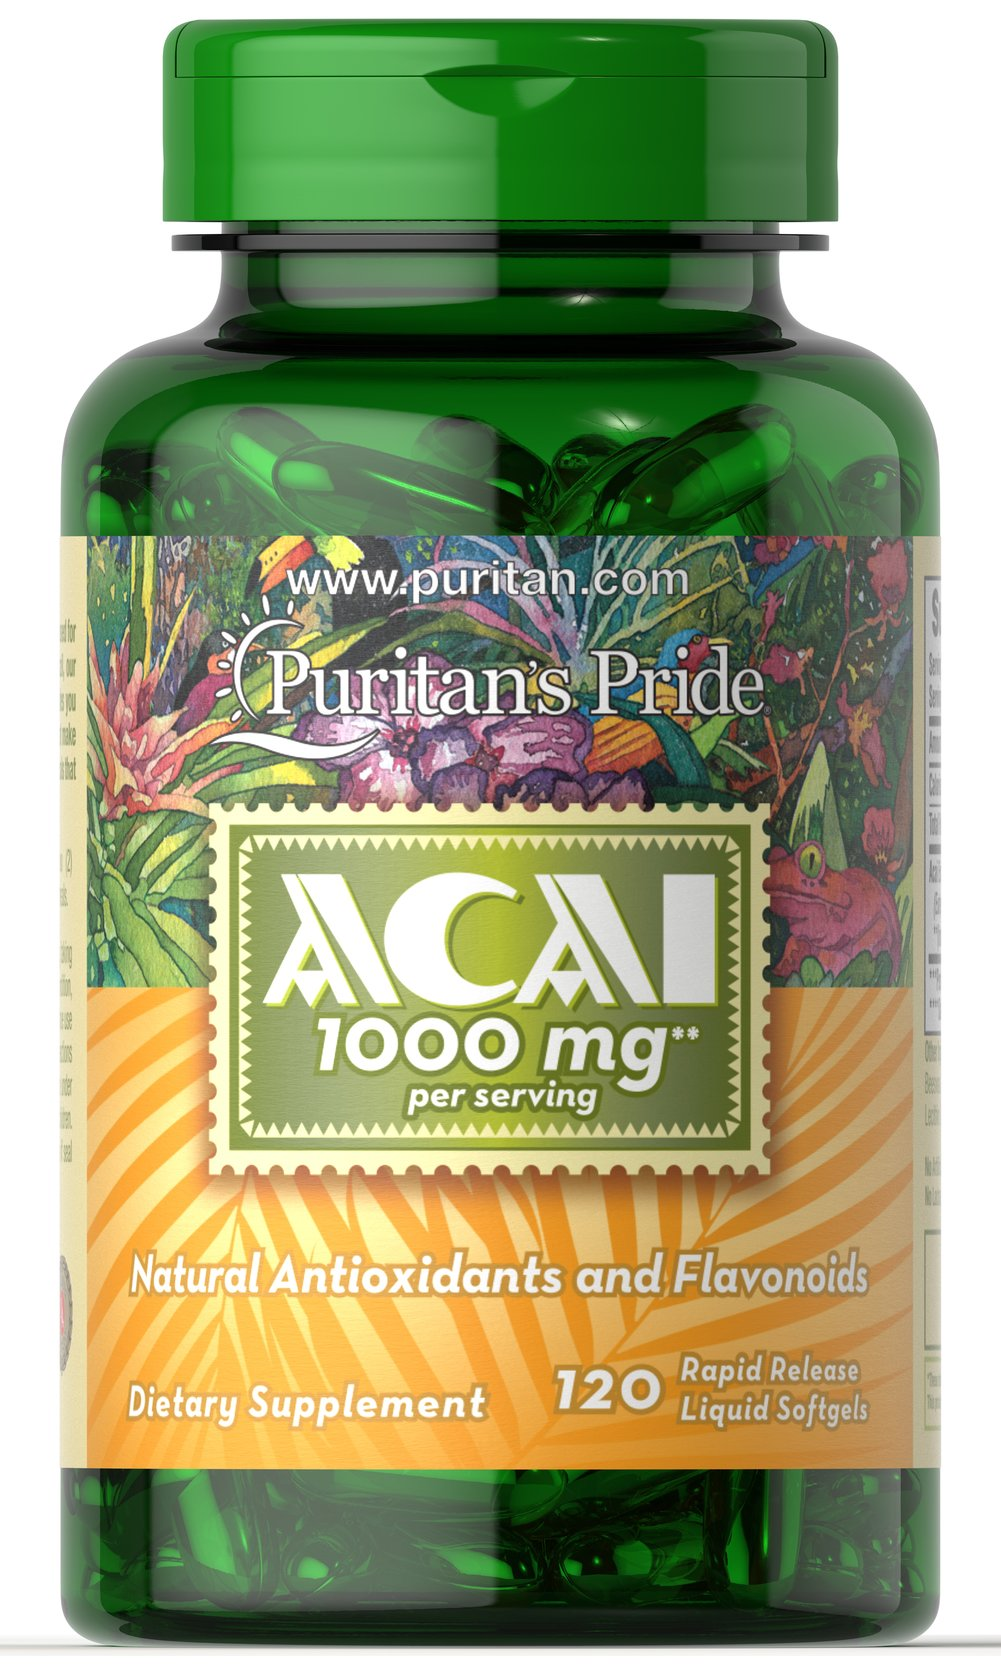 Acai 1000 mg Rapid-release liquid softgels <p></p>Contains 1000 mg Acai per serving (two softgels)<p></p>Contains natural flavonoids and antioxidants<p></p>Supports overall well-being**<p></p>Helps enrich the vitality of your body and soul**<p></p> 120 Softgels 1000 mg $16.99